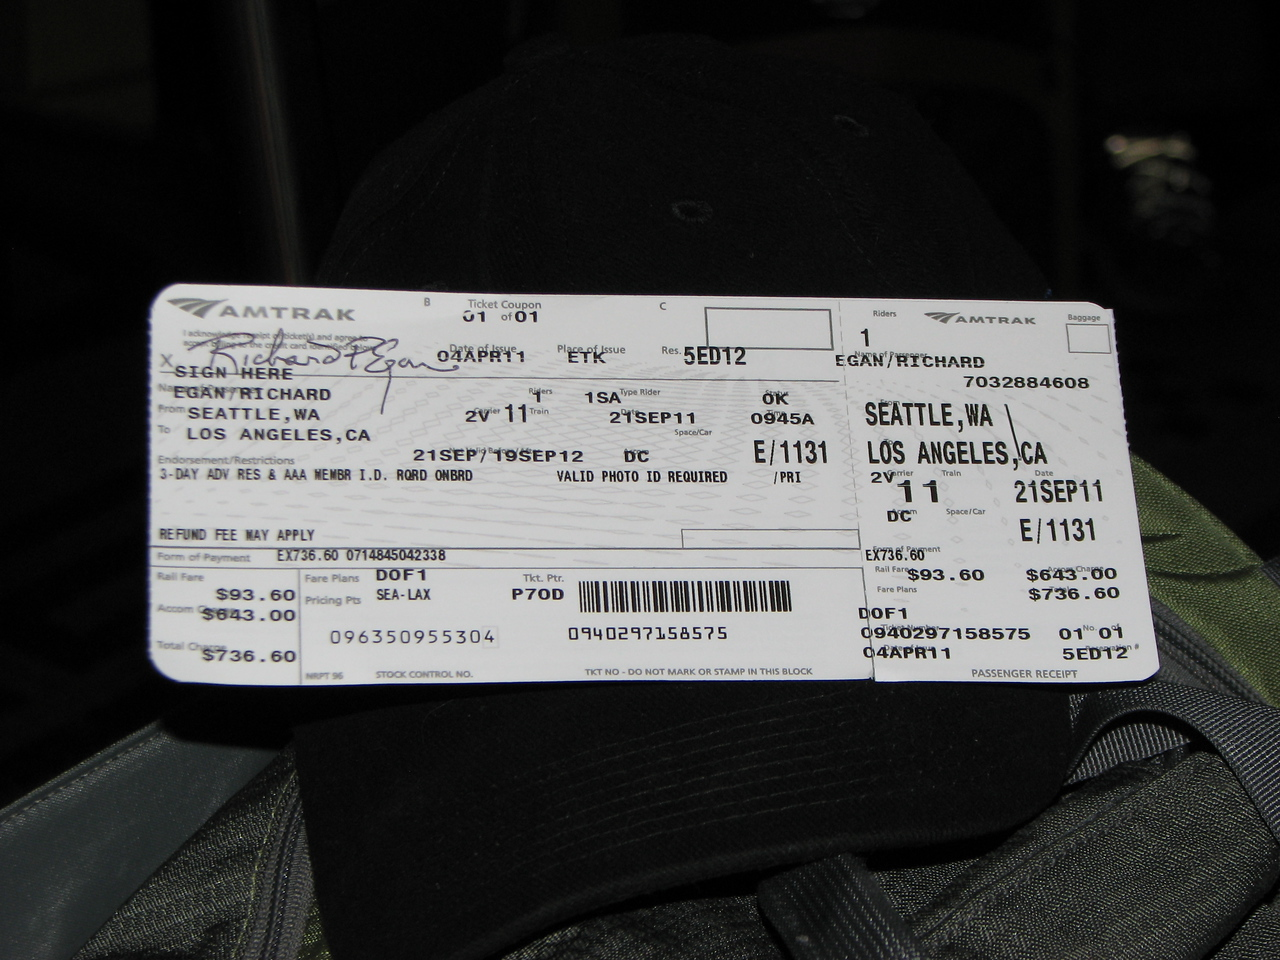 The First of 7 tickets required for the trip.